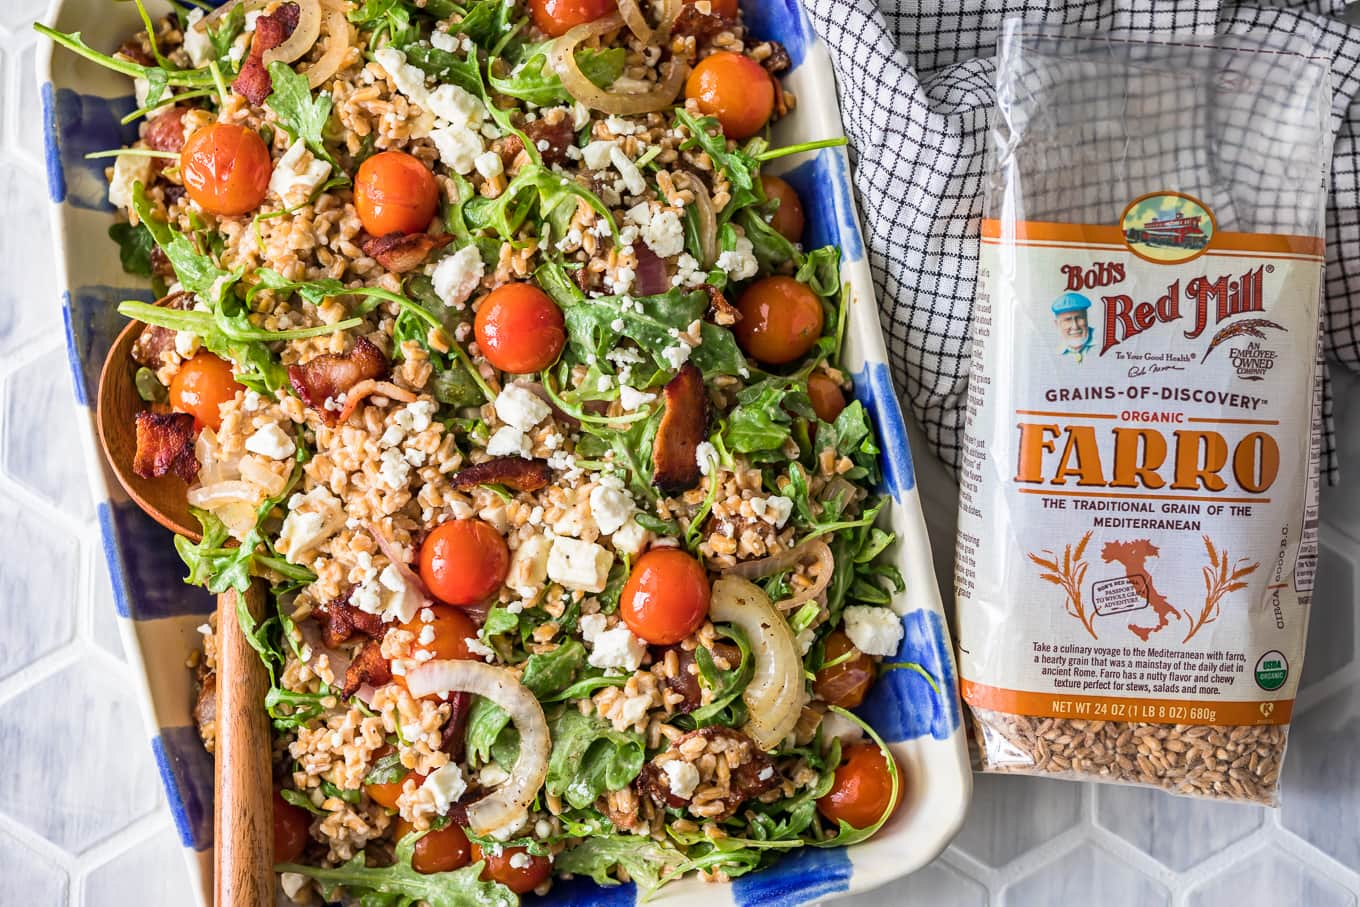 a plate of salad next to a bag of farro